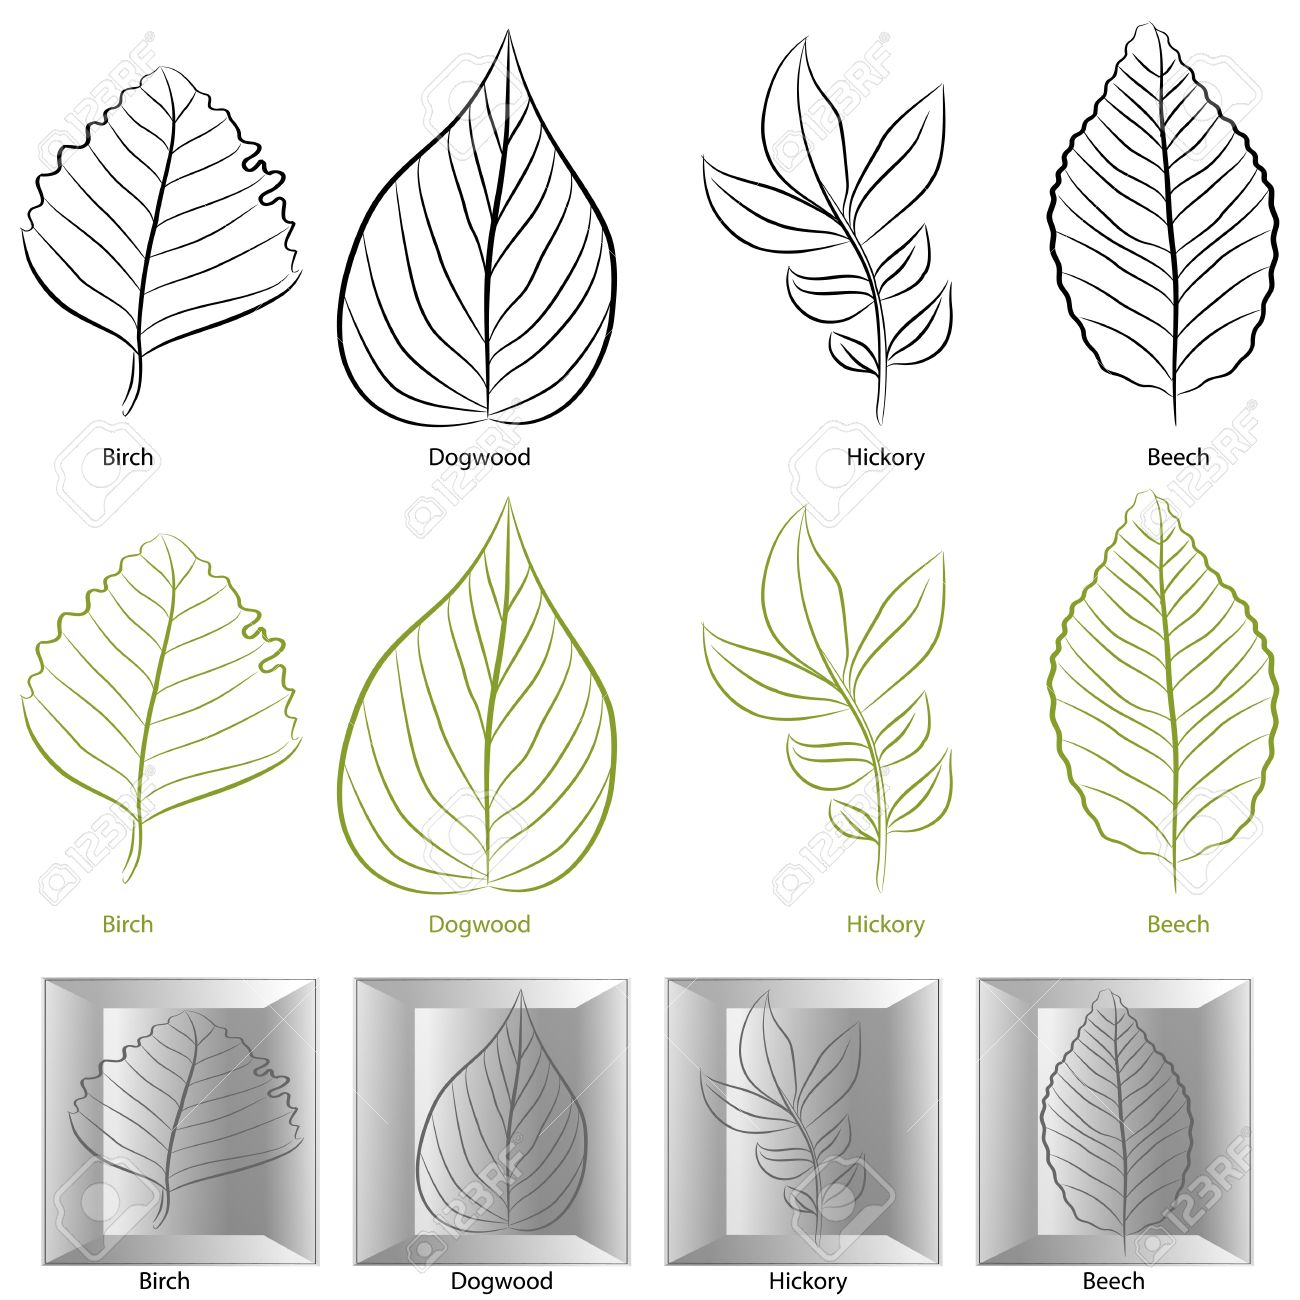 An image of a set of birch, dogwood, hickory and birch tree leaf types. Stock Vector - 12336819